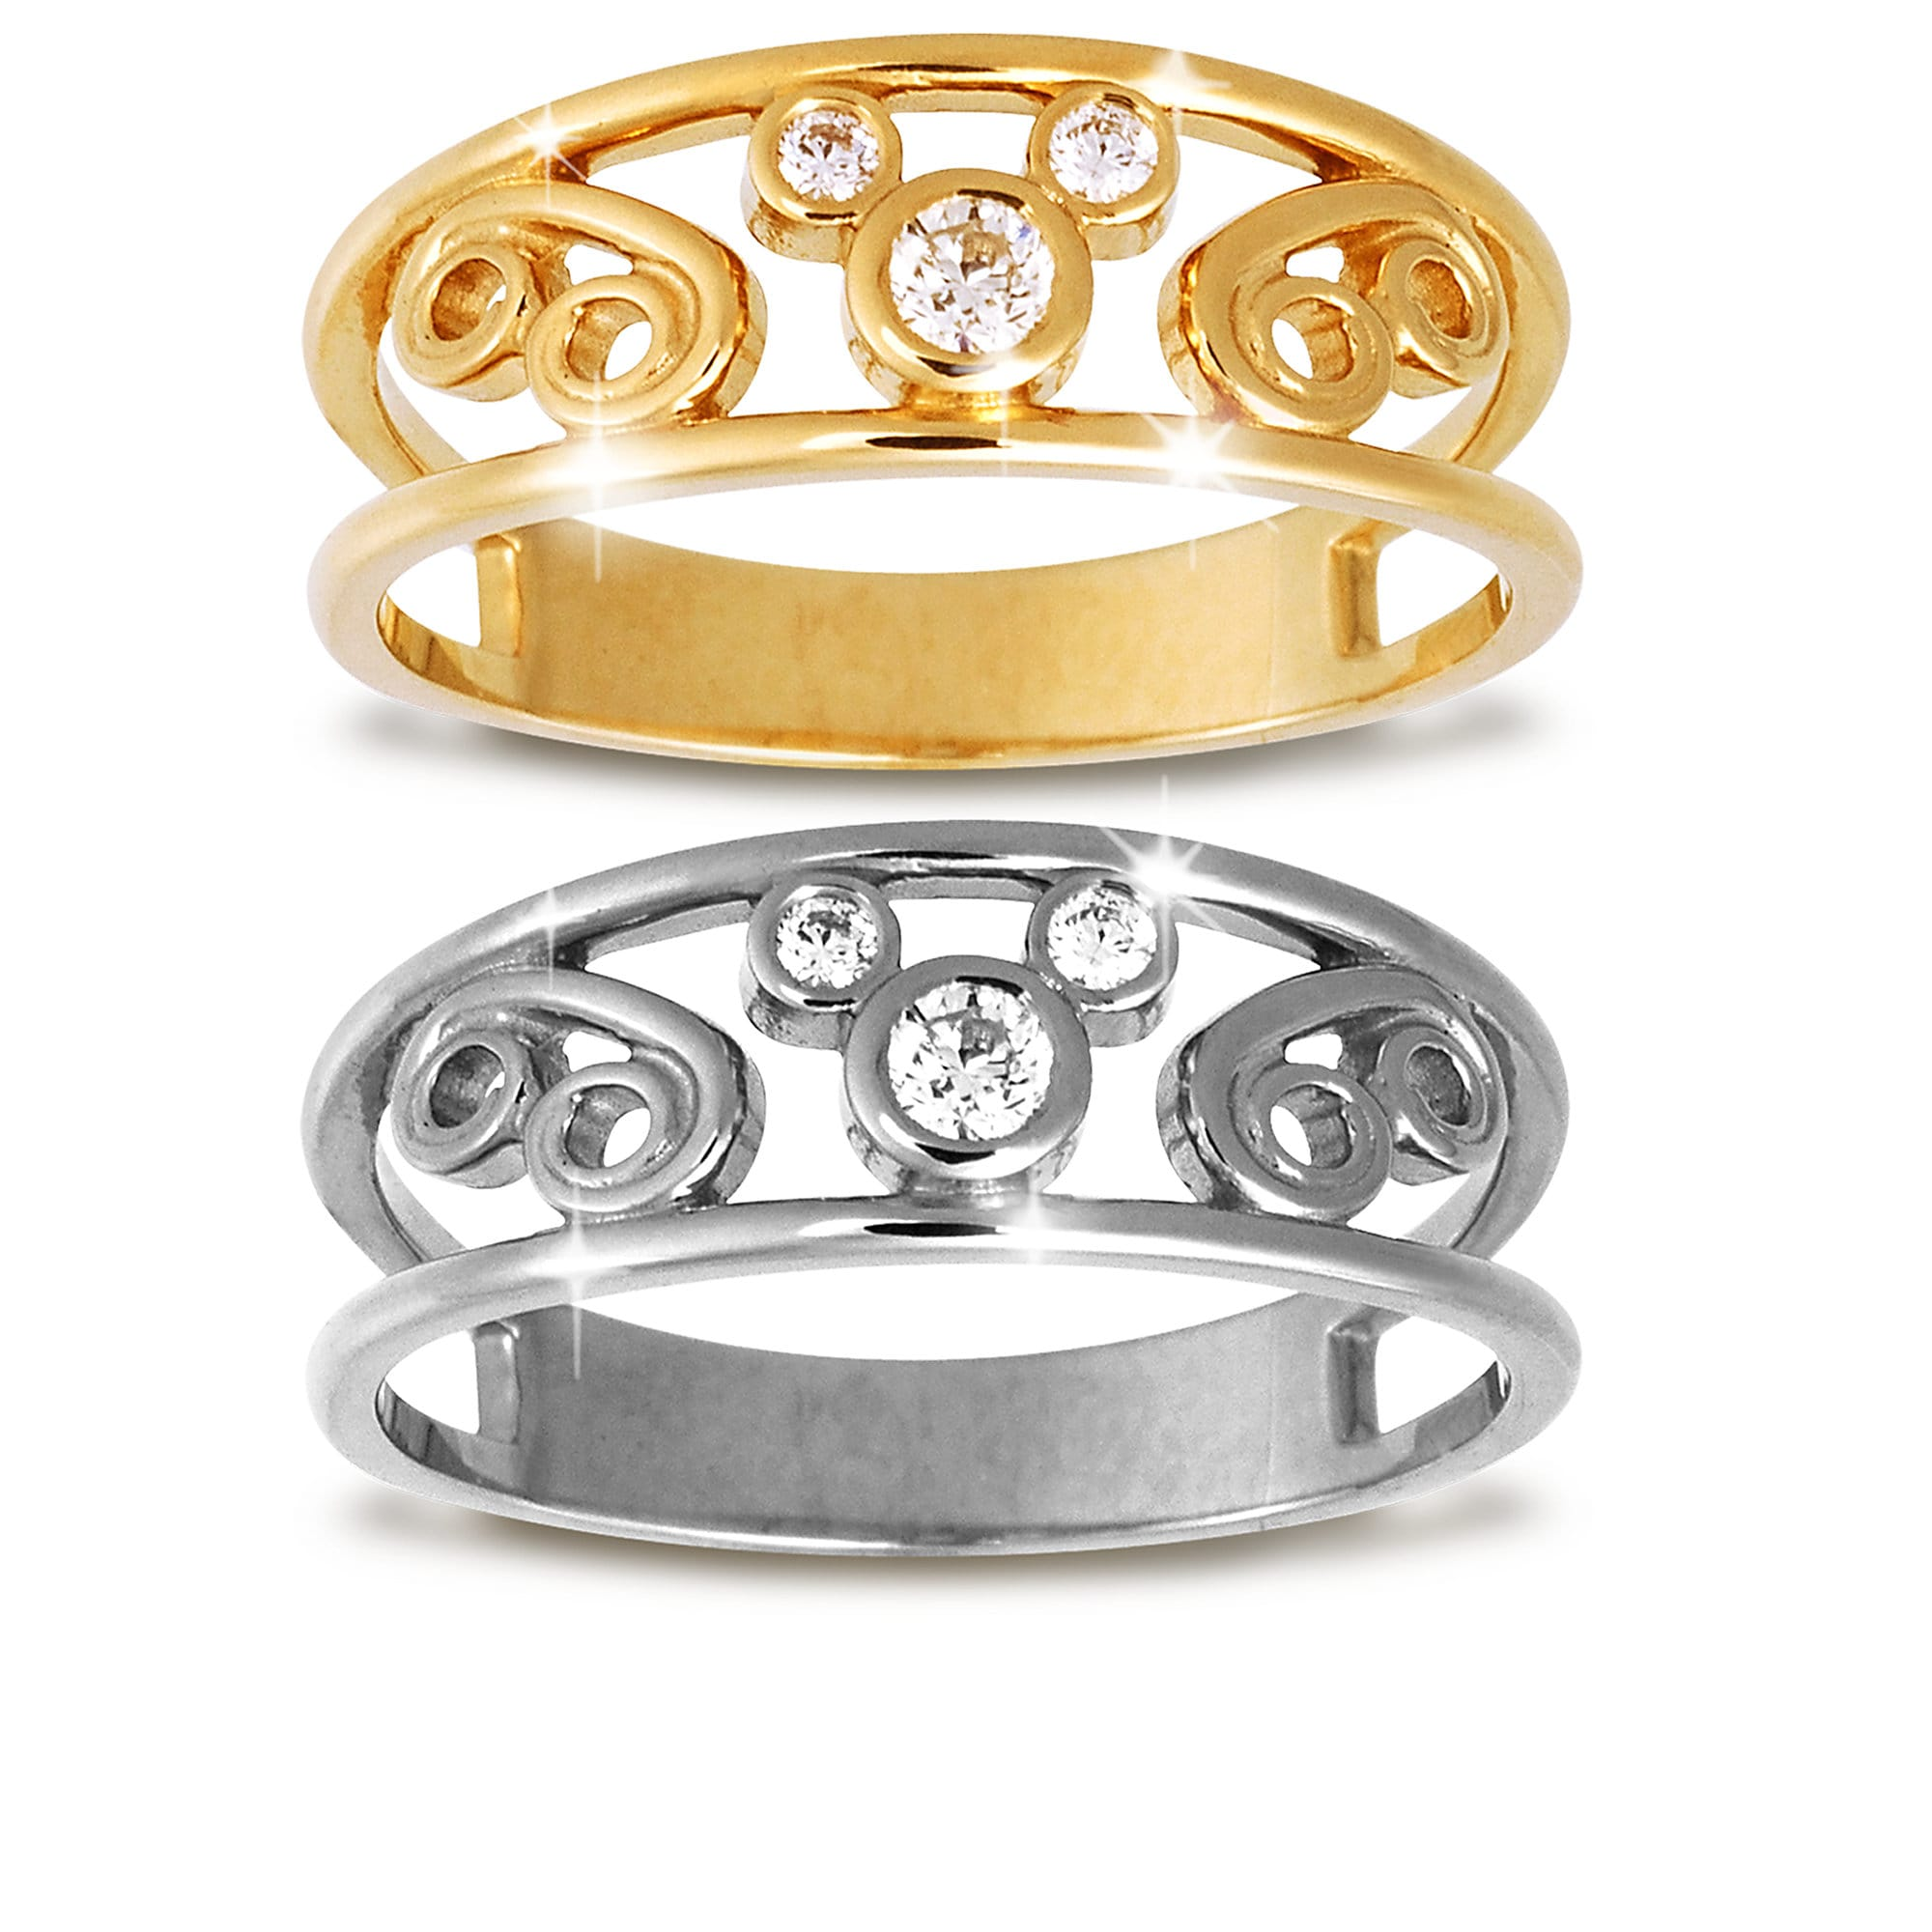 Mickey mouse wedding ring